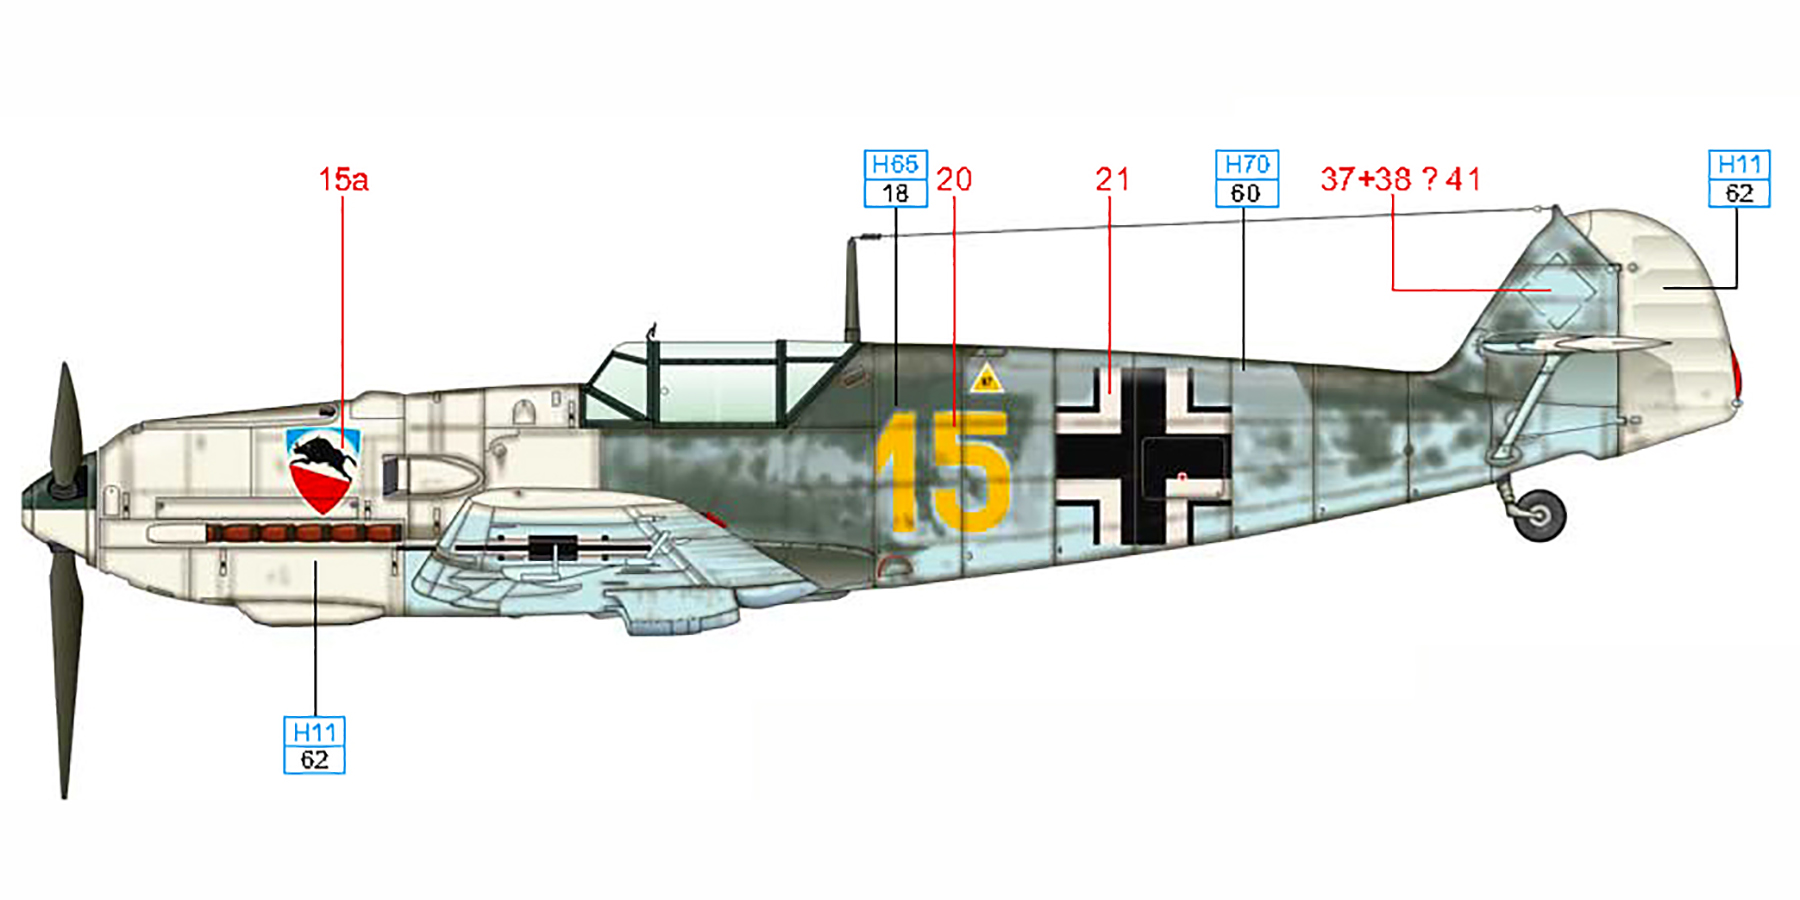 Messerschmitt Bf 109E3 3.JG52 Yellow 15 Kurt Wolff crash landed France 30th Aug 1940 0D